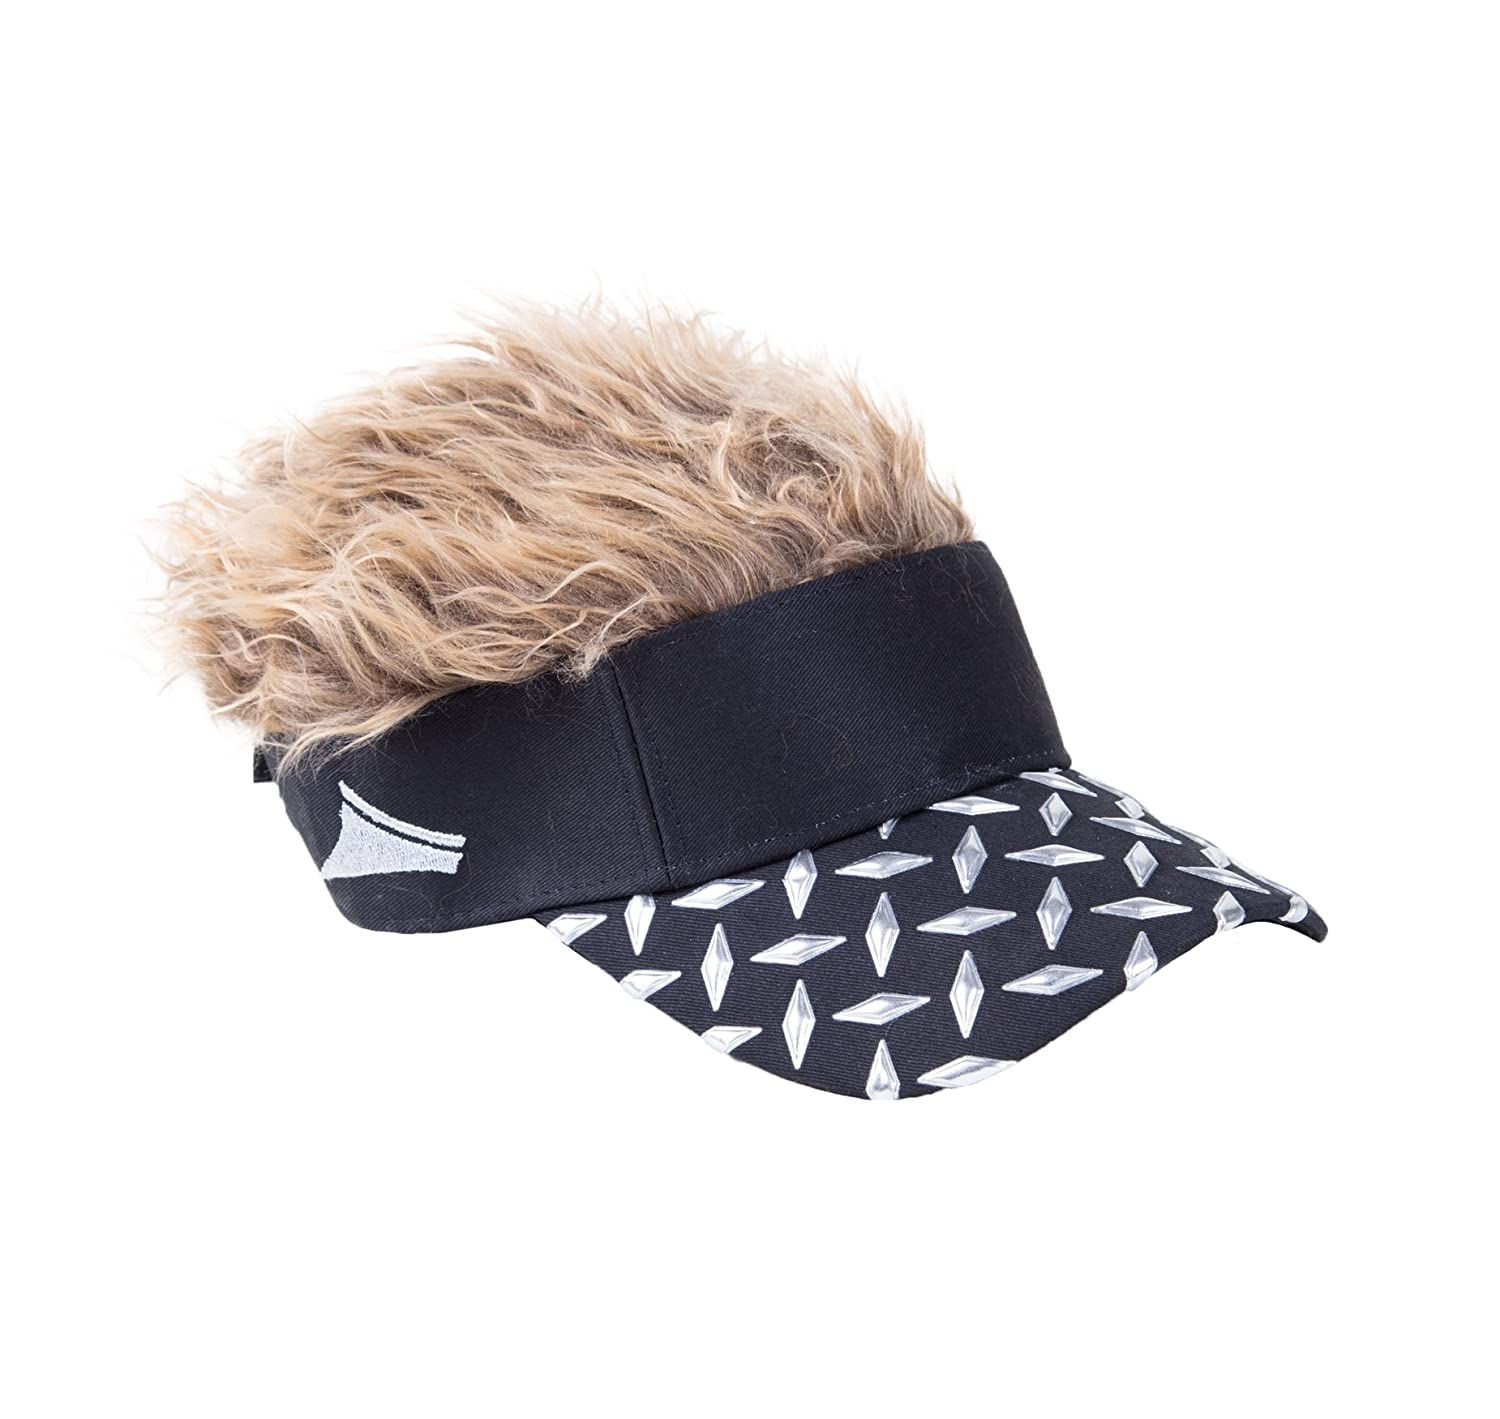 c2ffe240 Amazon.com: Flair Hair Visor (One Size fits Most): Clothing